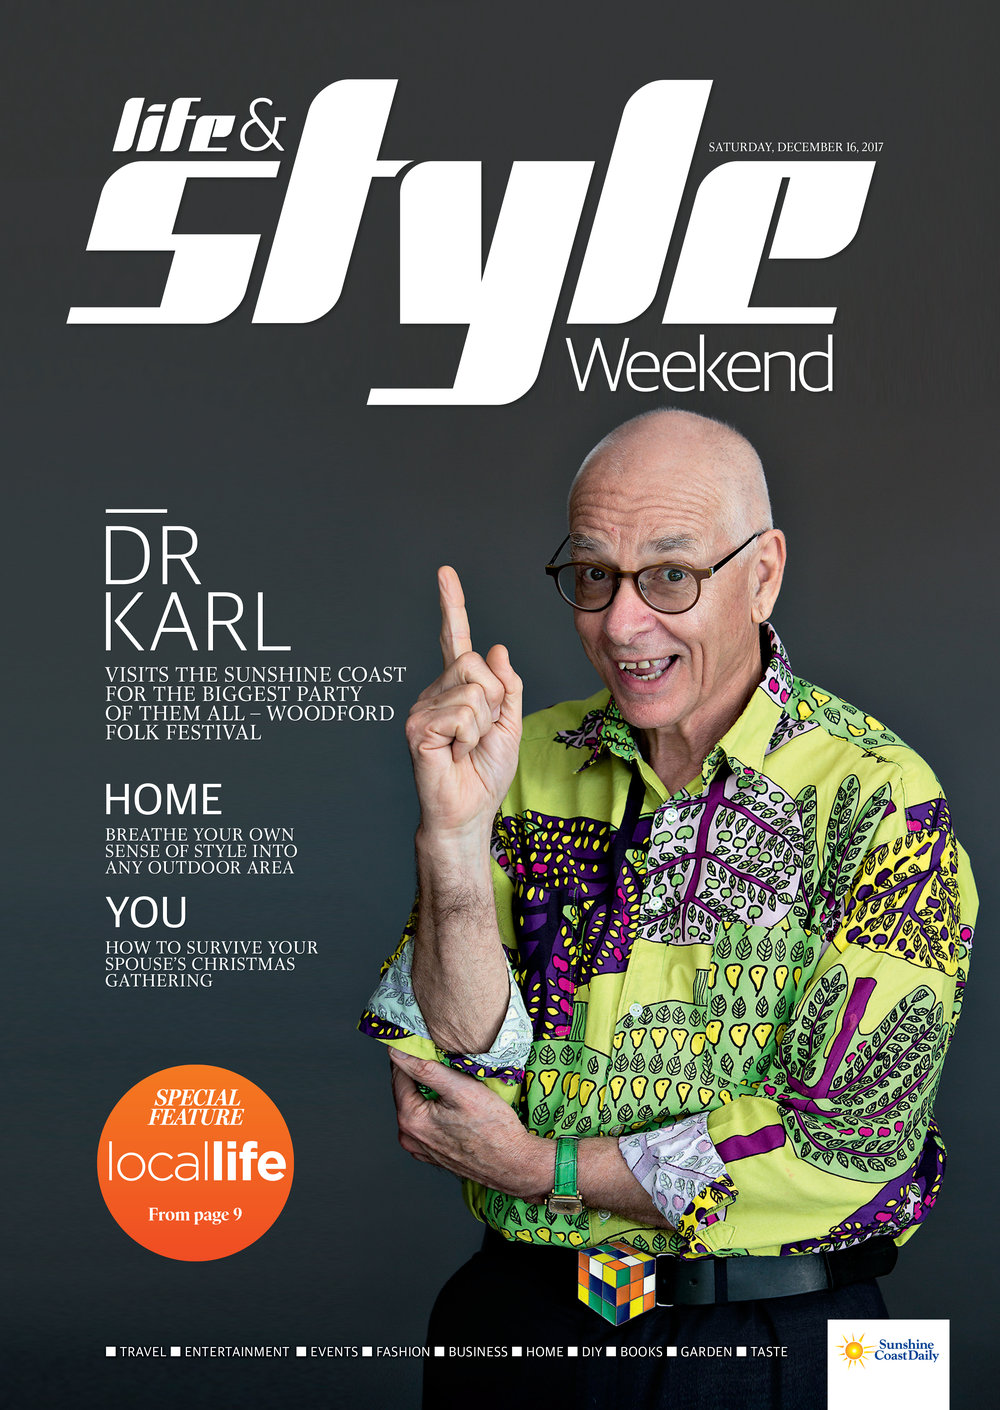 Dr Karl heads to the biggest party of them all